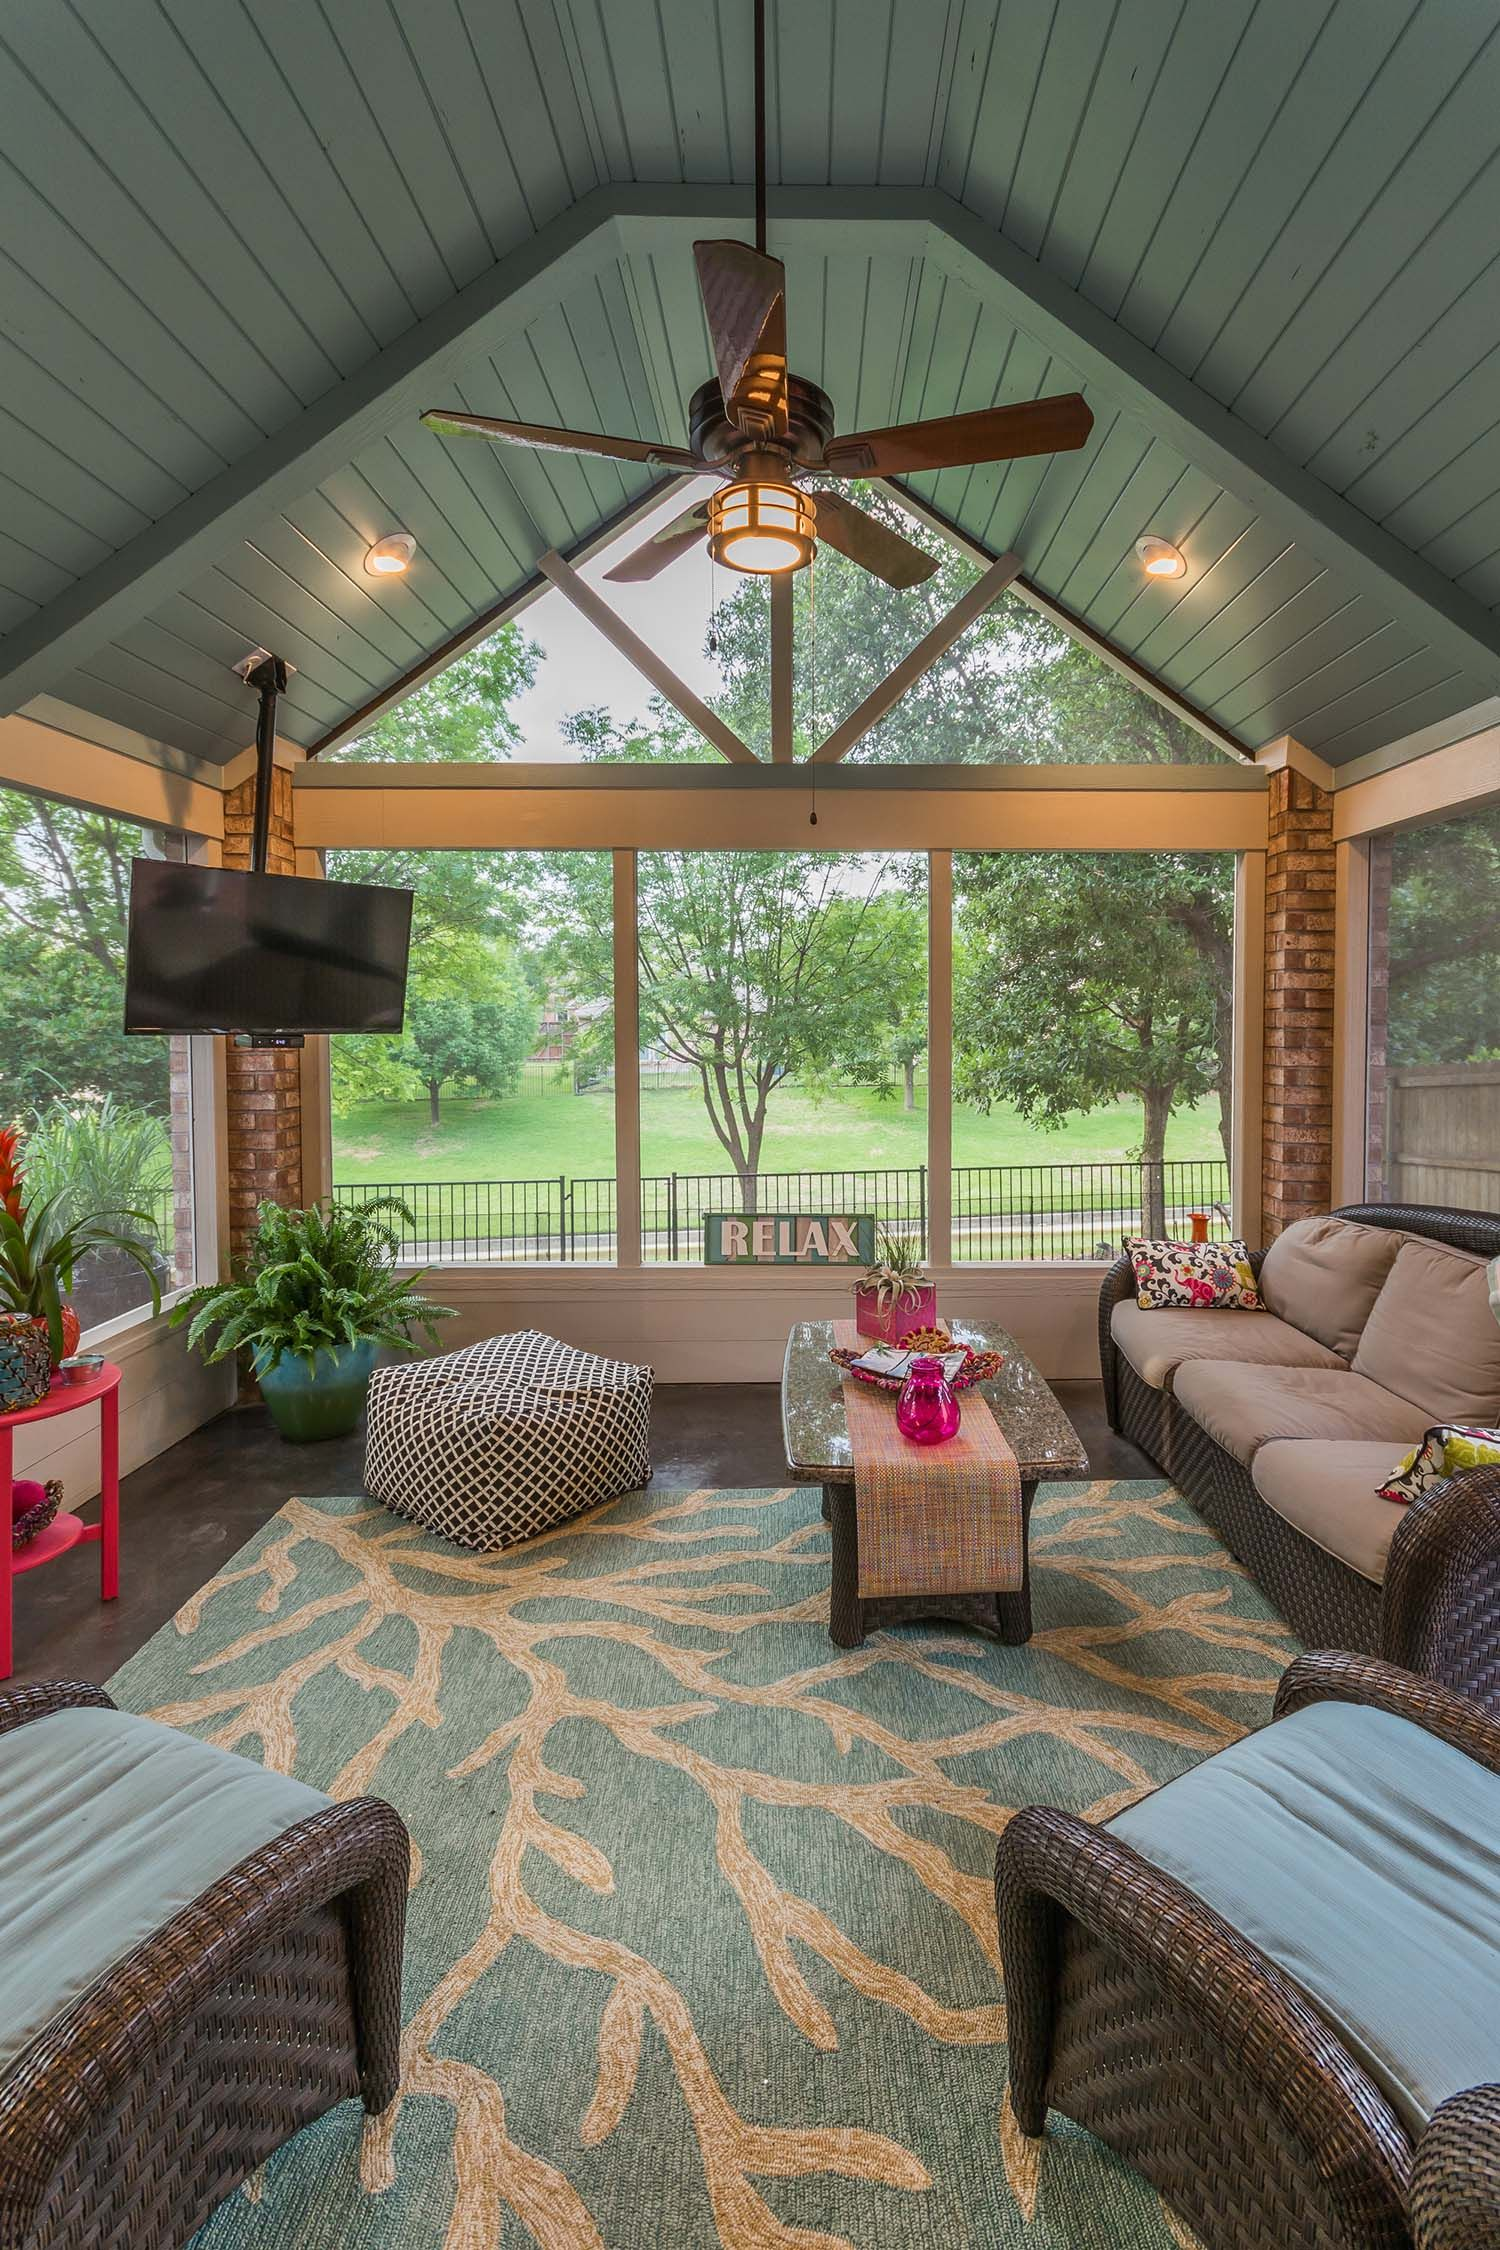 45 Amazingly Cozy And Relaxing Screened Porch Design Ideas Screened Porch Designs Porch Design Sunroom Designs